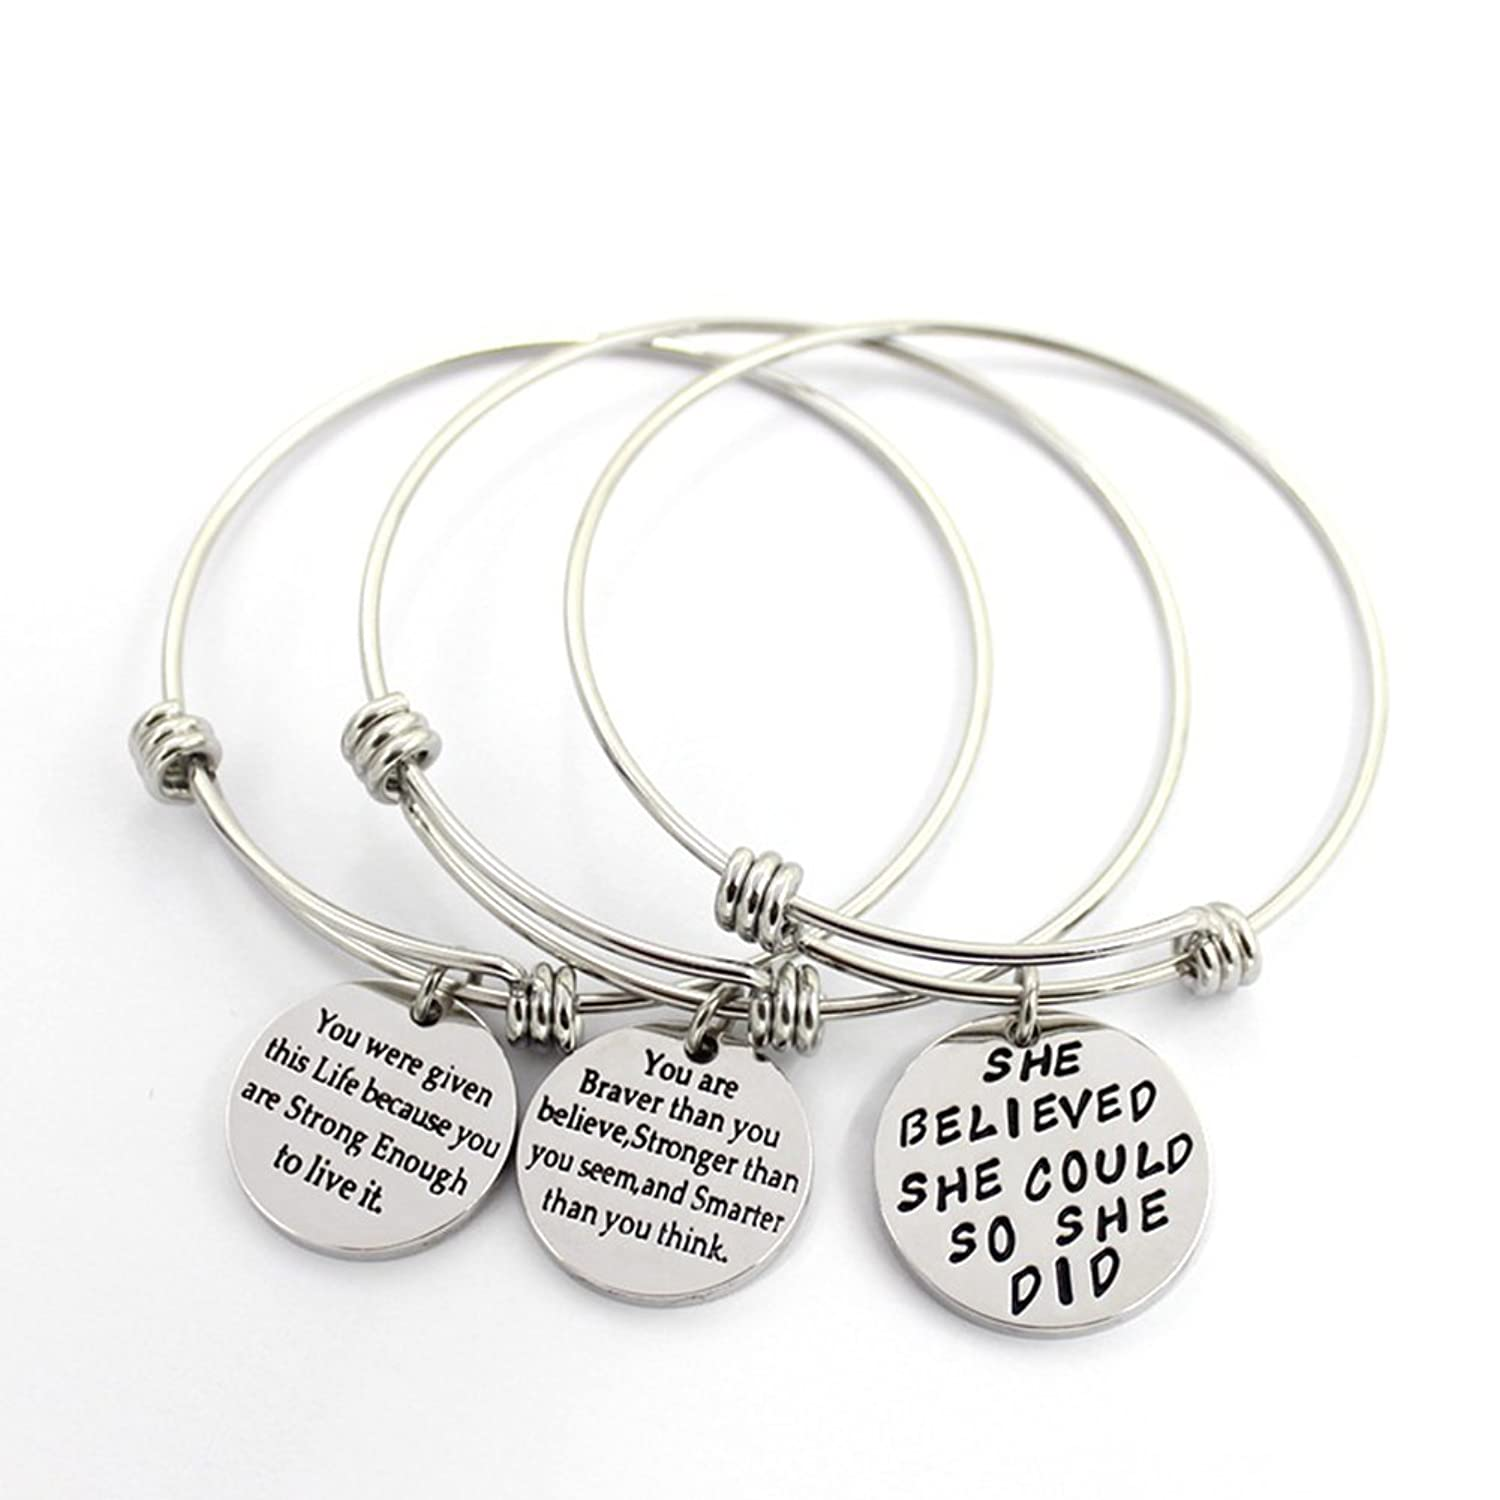 mailing inspirational sliver twisted p charm bangle message mother bracelet daughter list